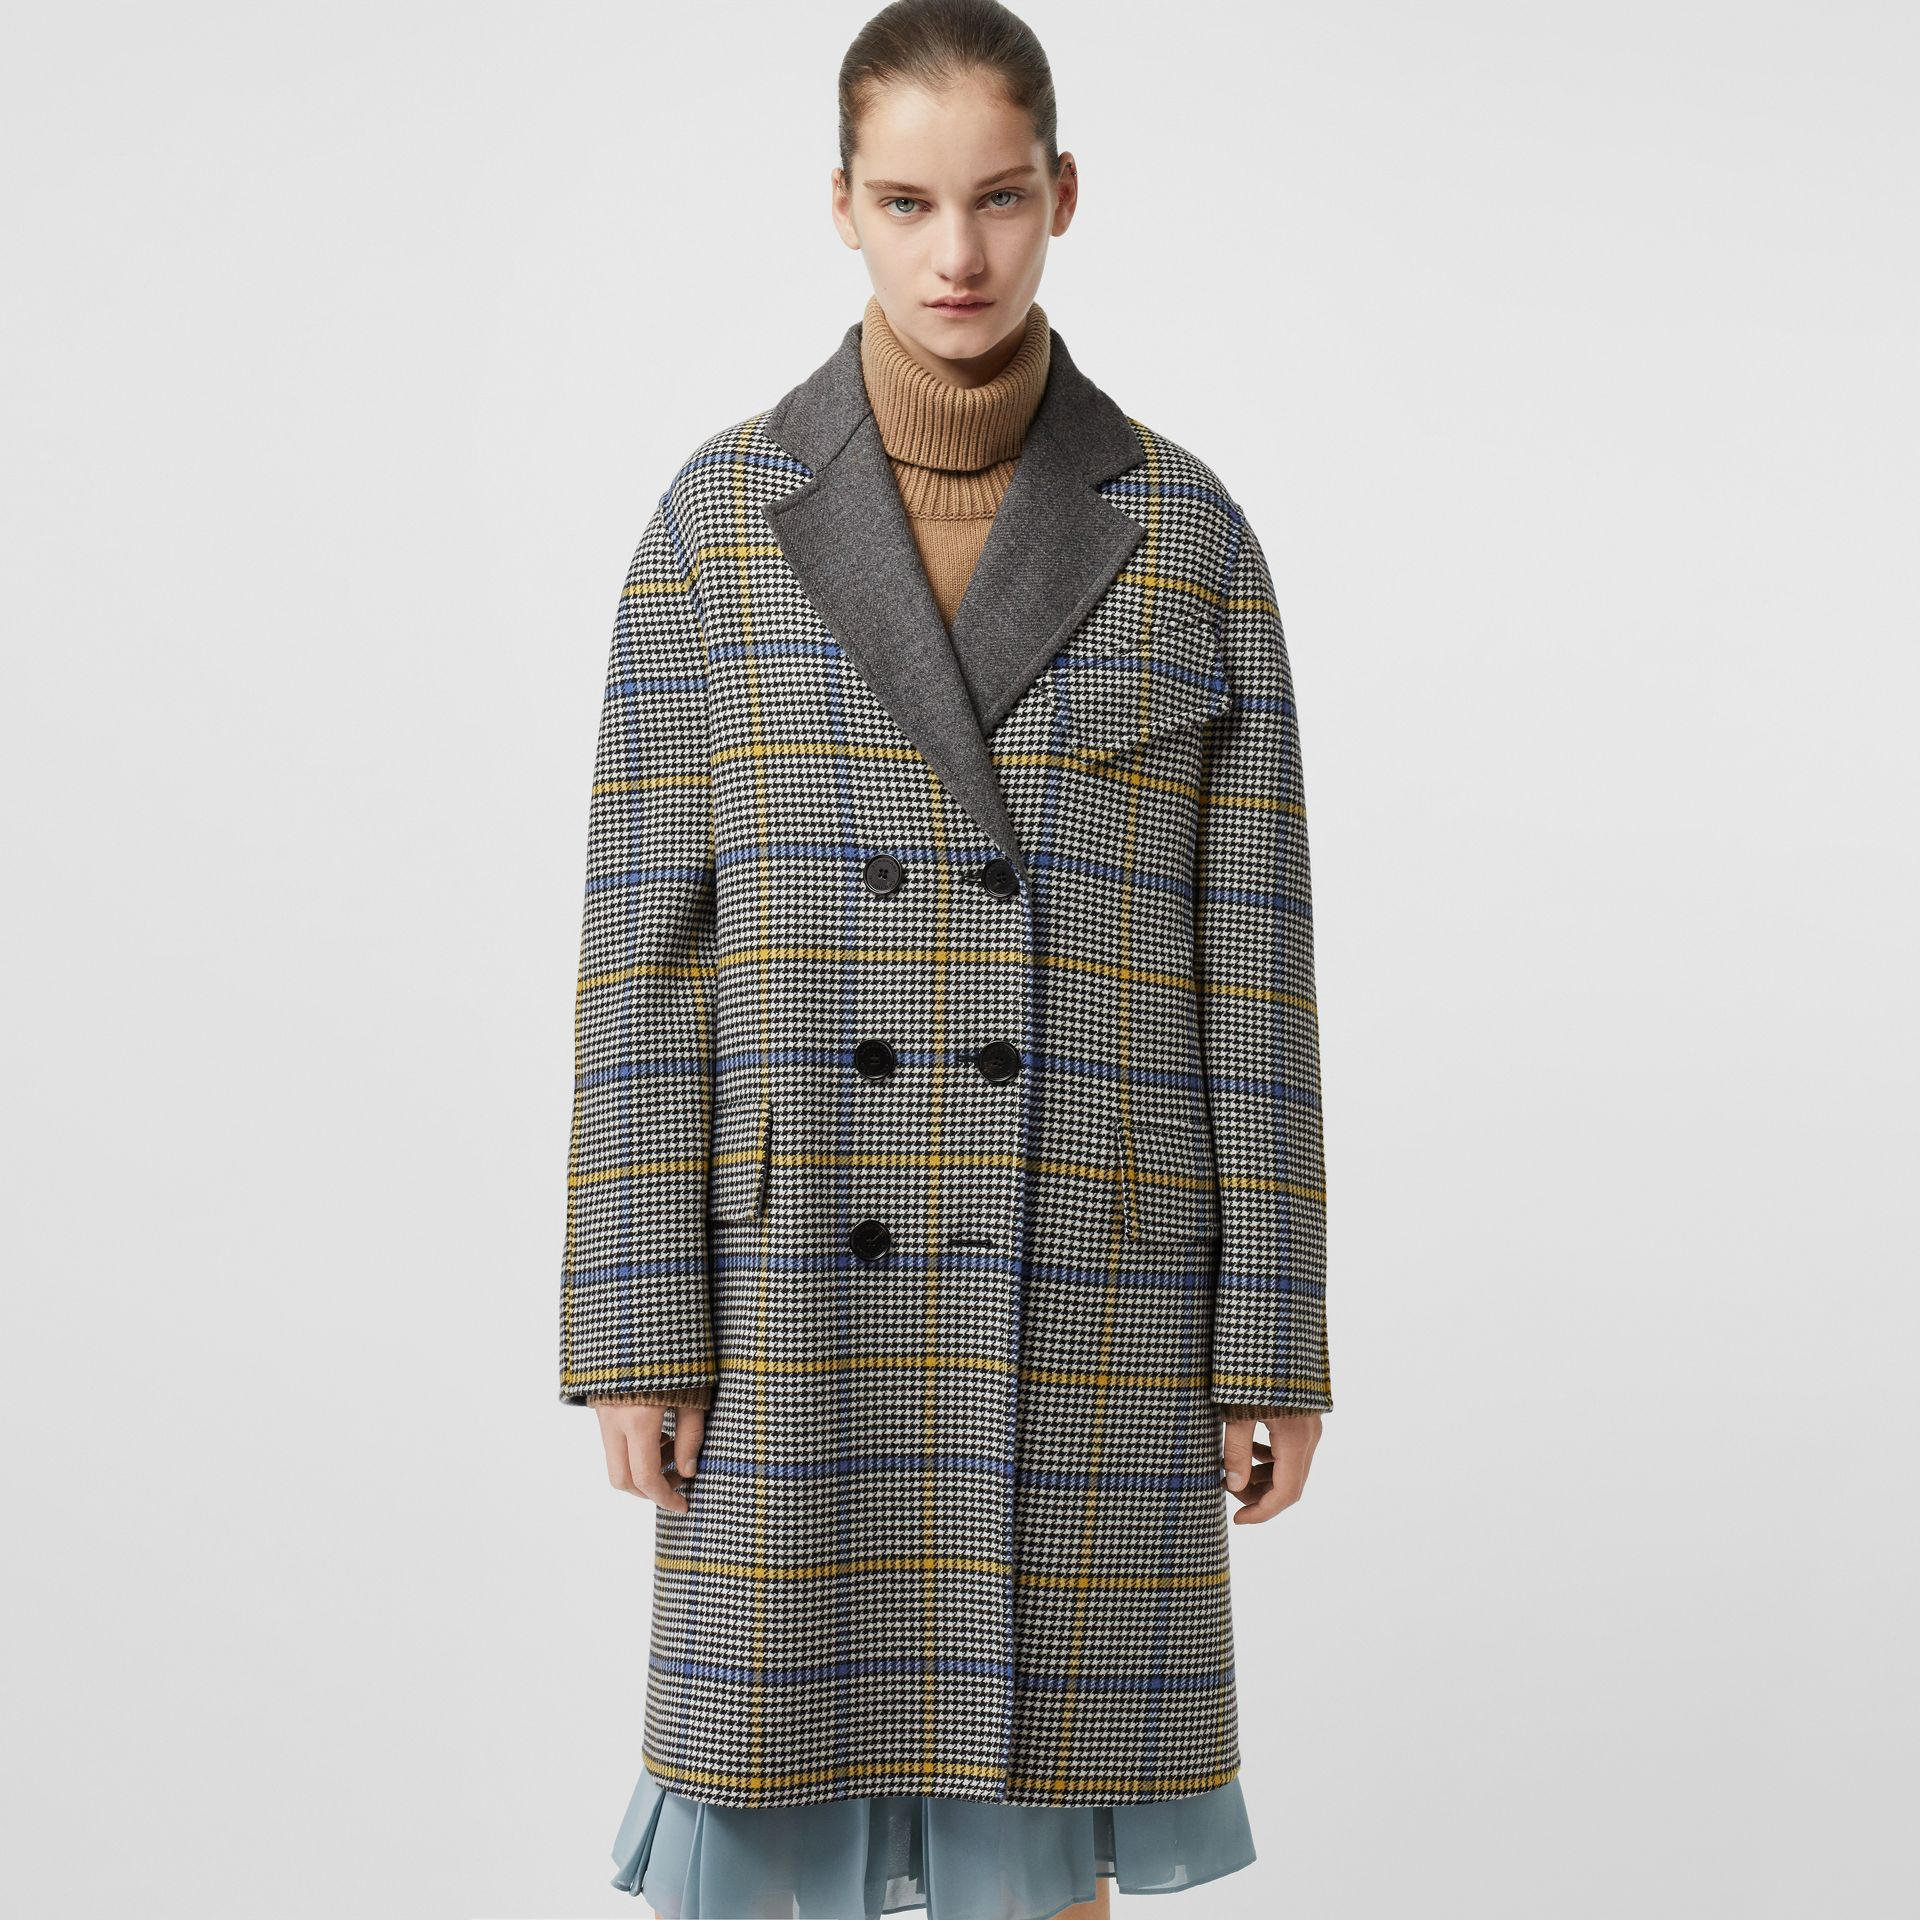 Manteau en laine et cachemire double face à motif check (Parchemin) - Femme | Burberry - photo de la galerie 5